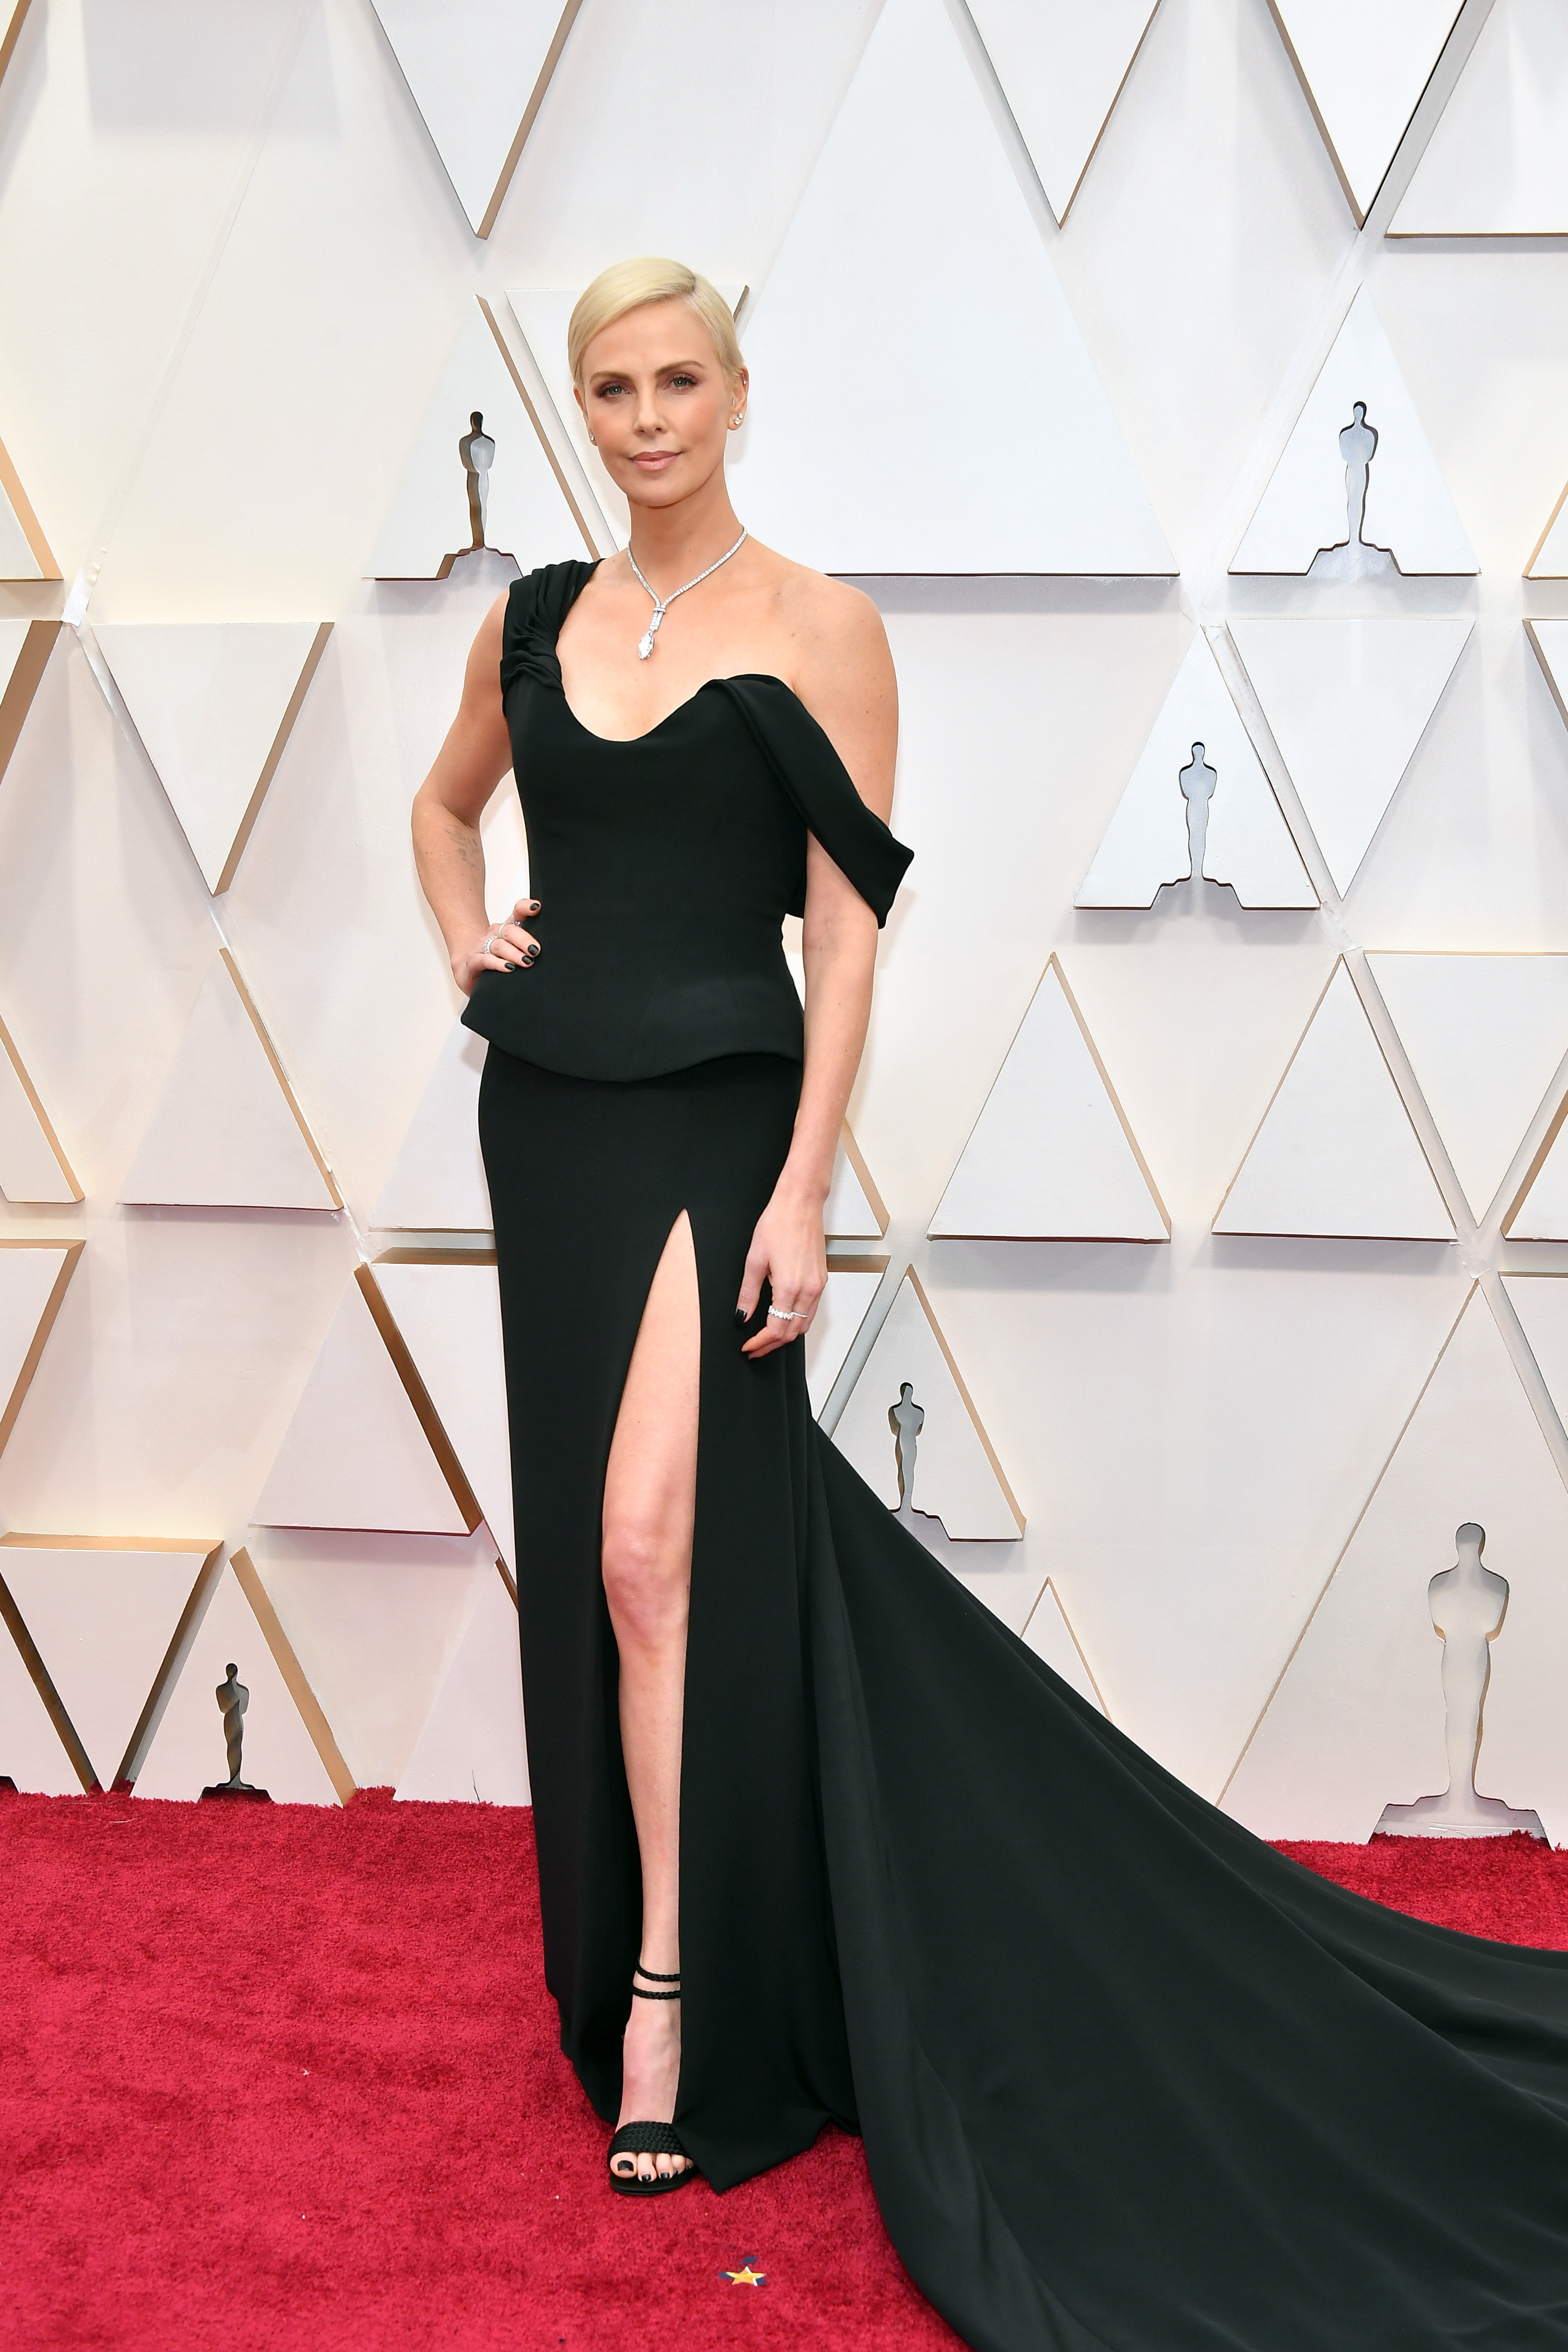 HOLLYWOOD, CALIFORNIA - FEBRUARY 09: Charlize Theron  attends the 92nd Annual Academy Awards at Hollywood and Highland on February 09, 2020 in Hollywood, California.